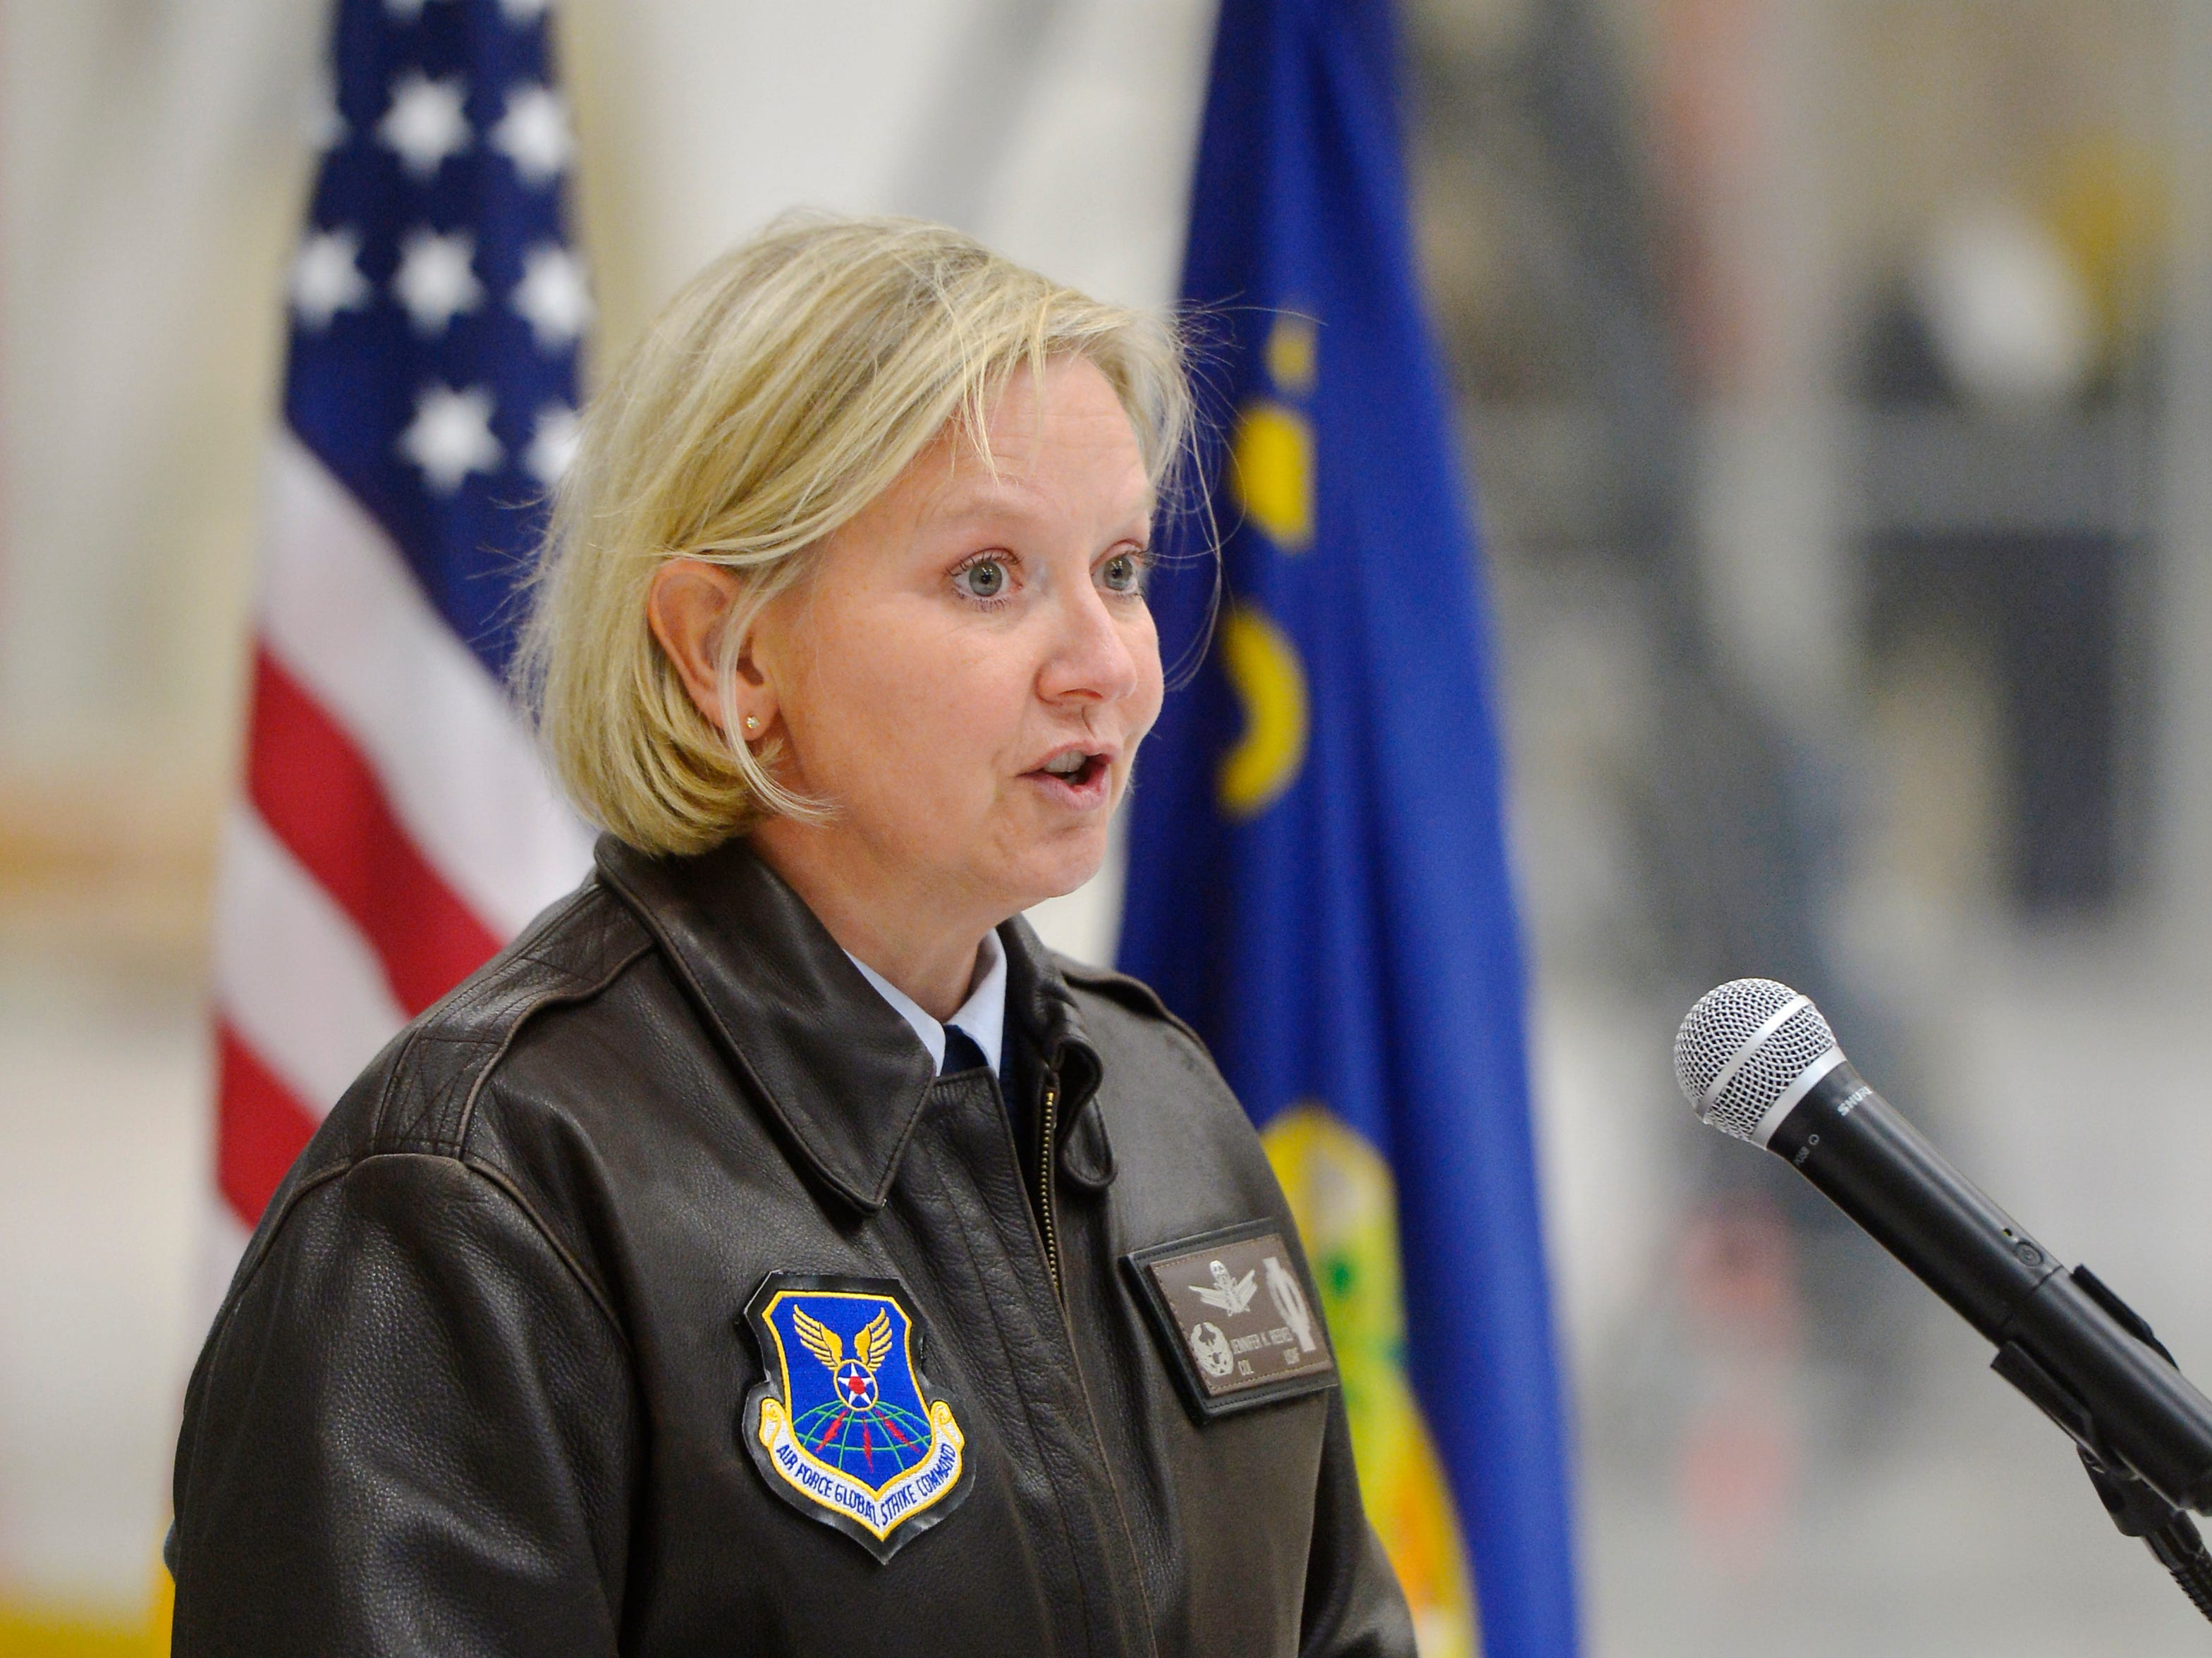 Col. Jennifer Reeves, Commander of the 341st Missile Wing at Malmstrom Air Force Base, makes her remarks during the fifth anniversary ceremony for the Veterans Treatment Court on Tuesday at the Montana Air National Guard.